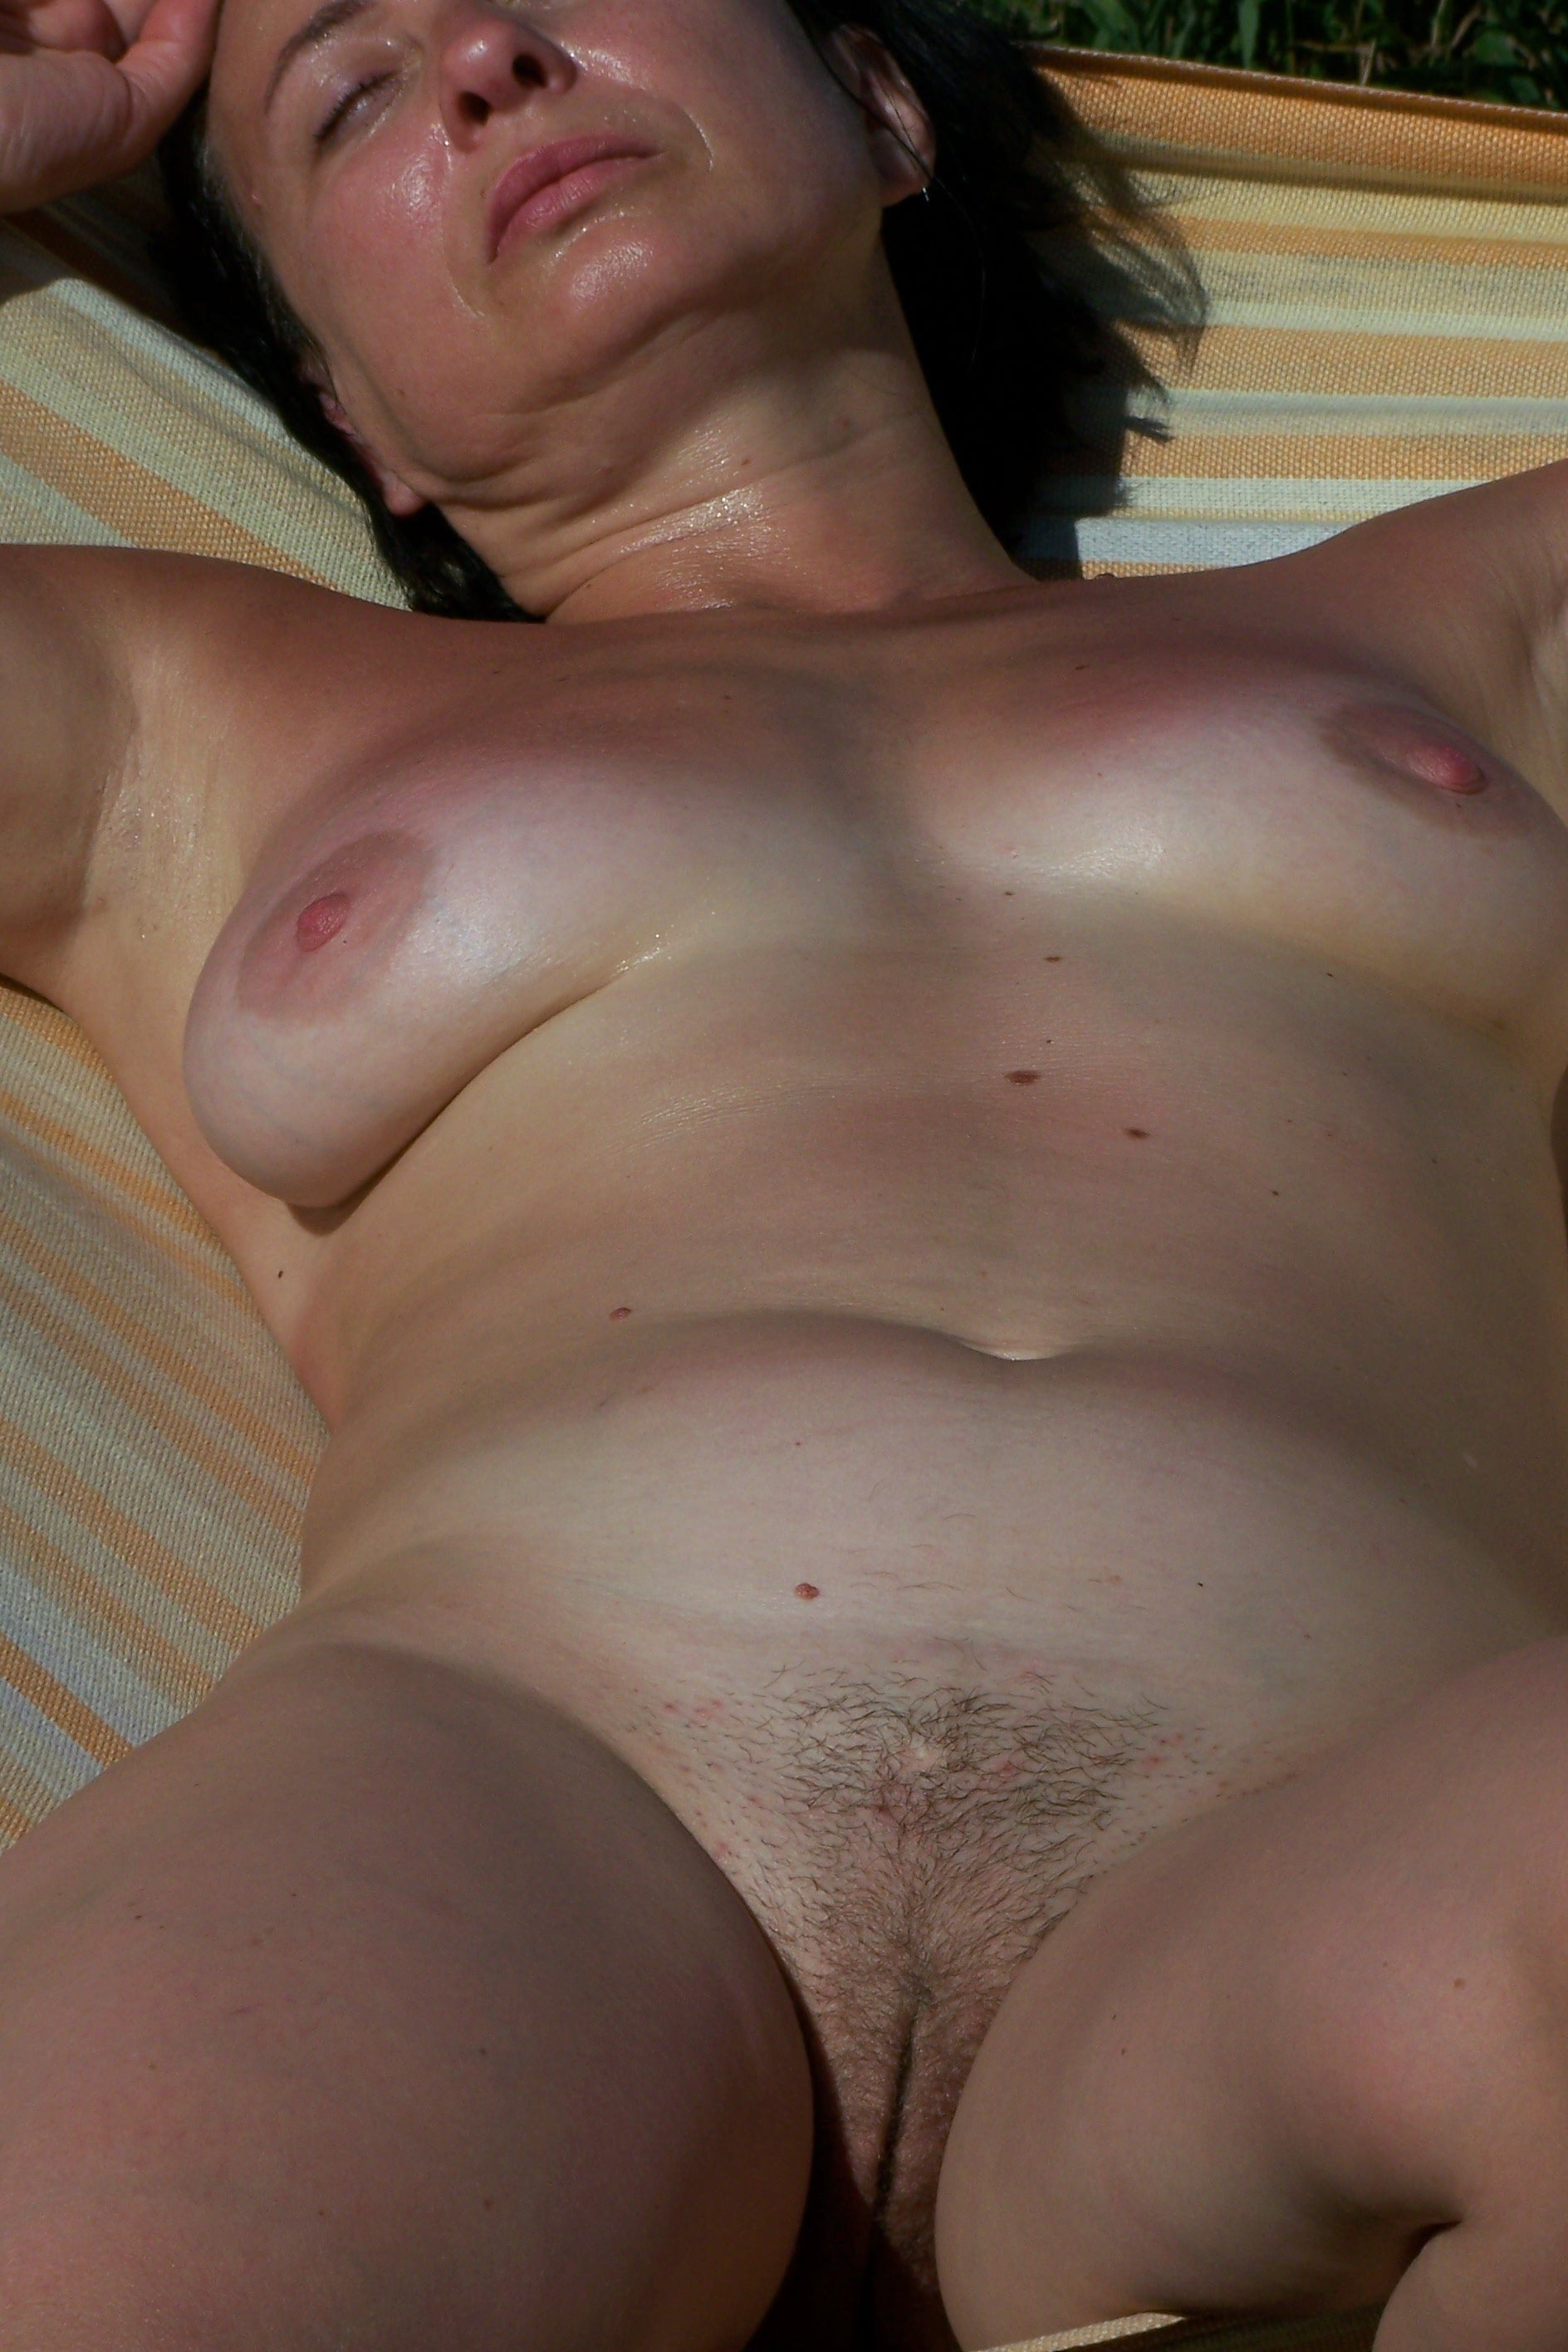 curvy milf nylons russian big boobs tumblr